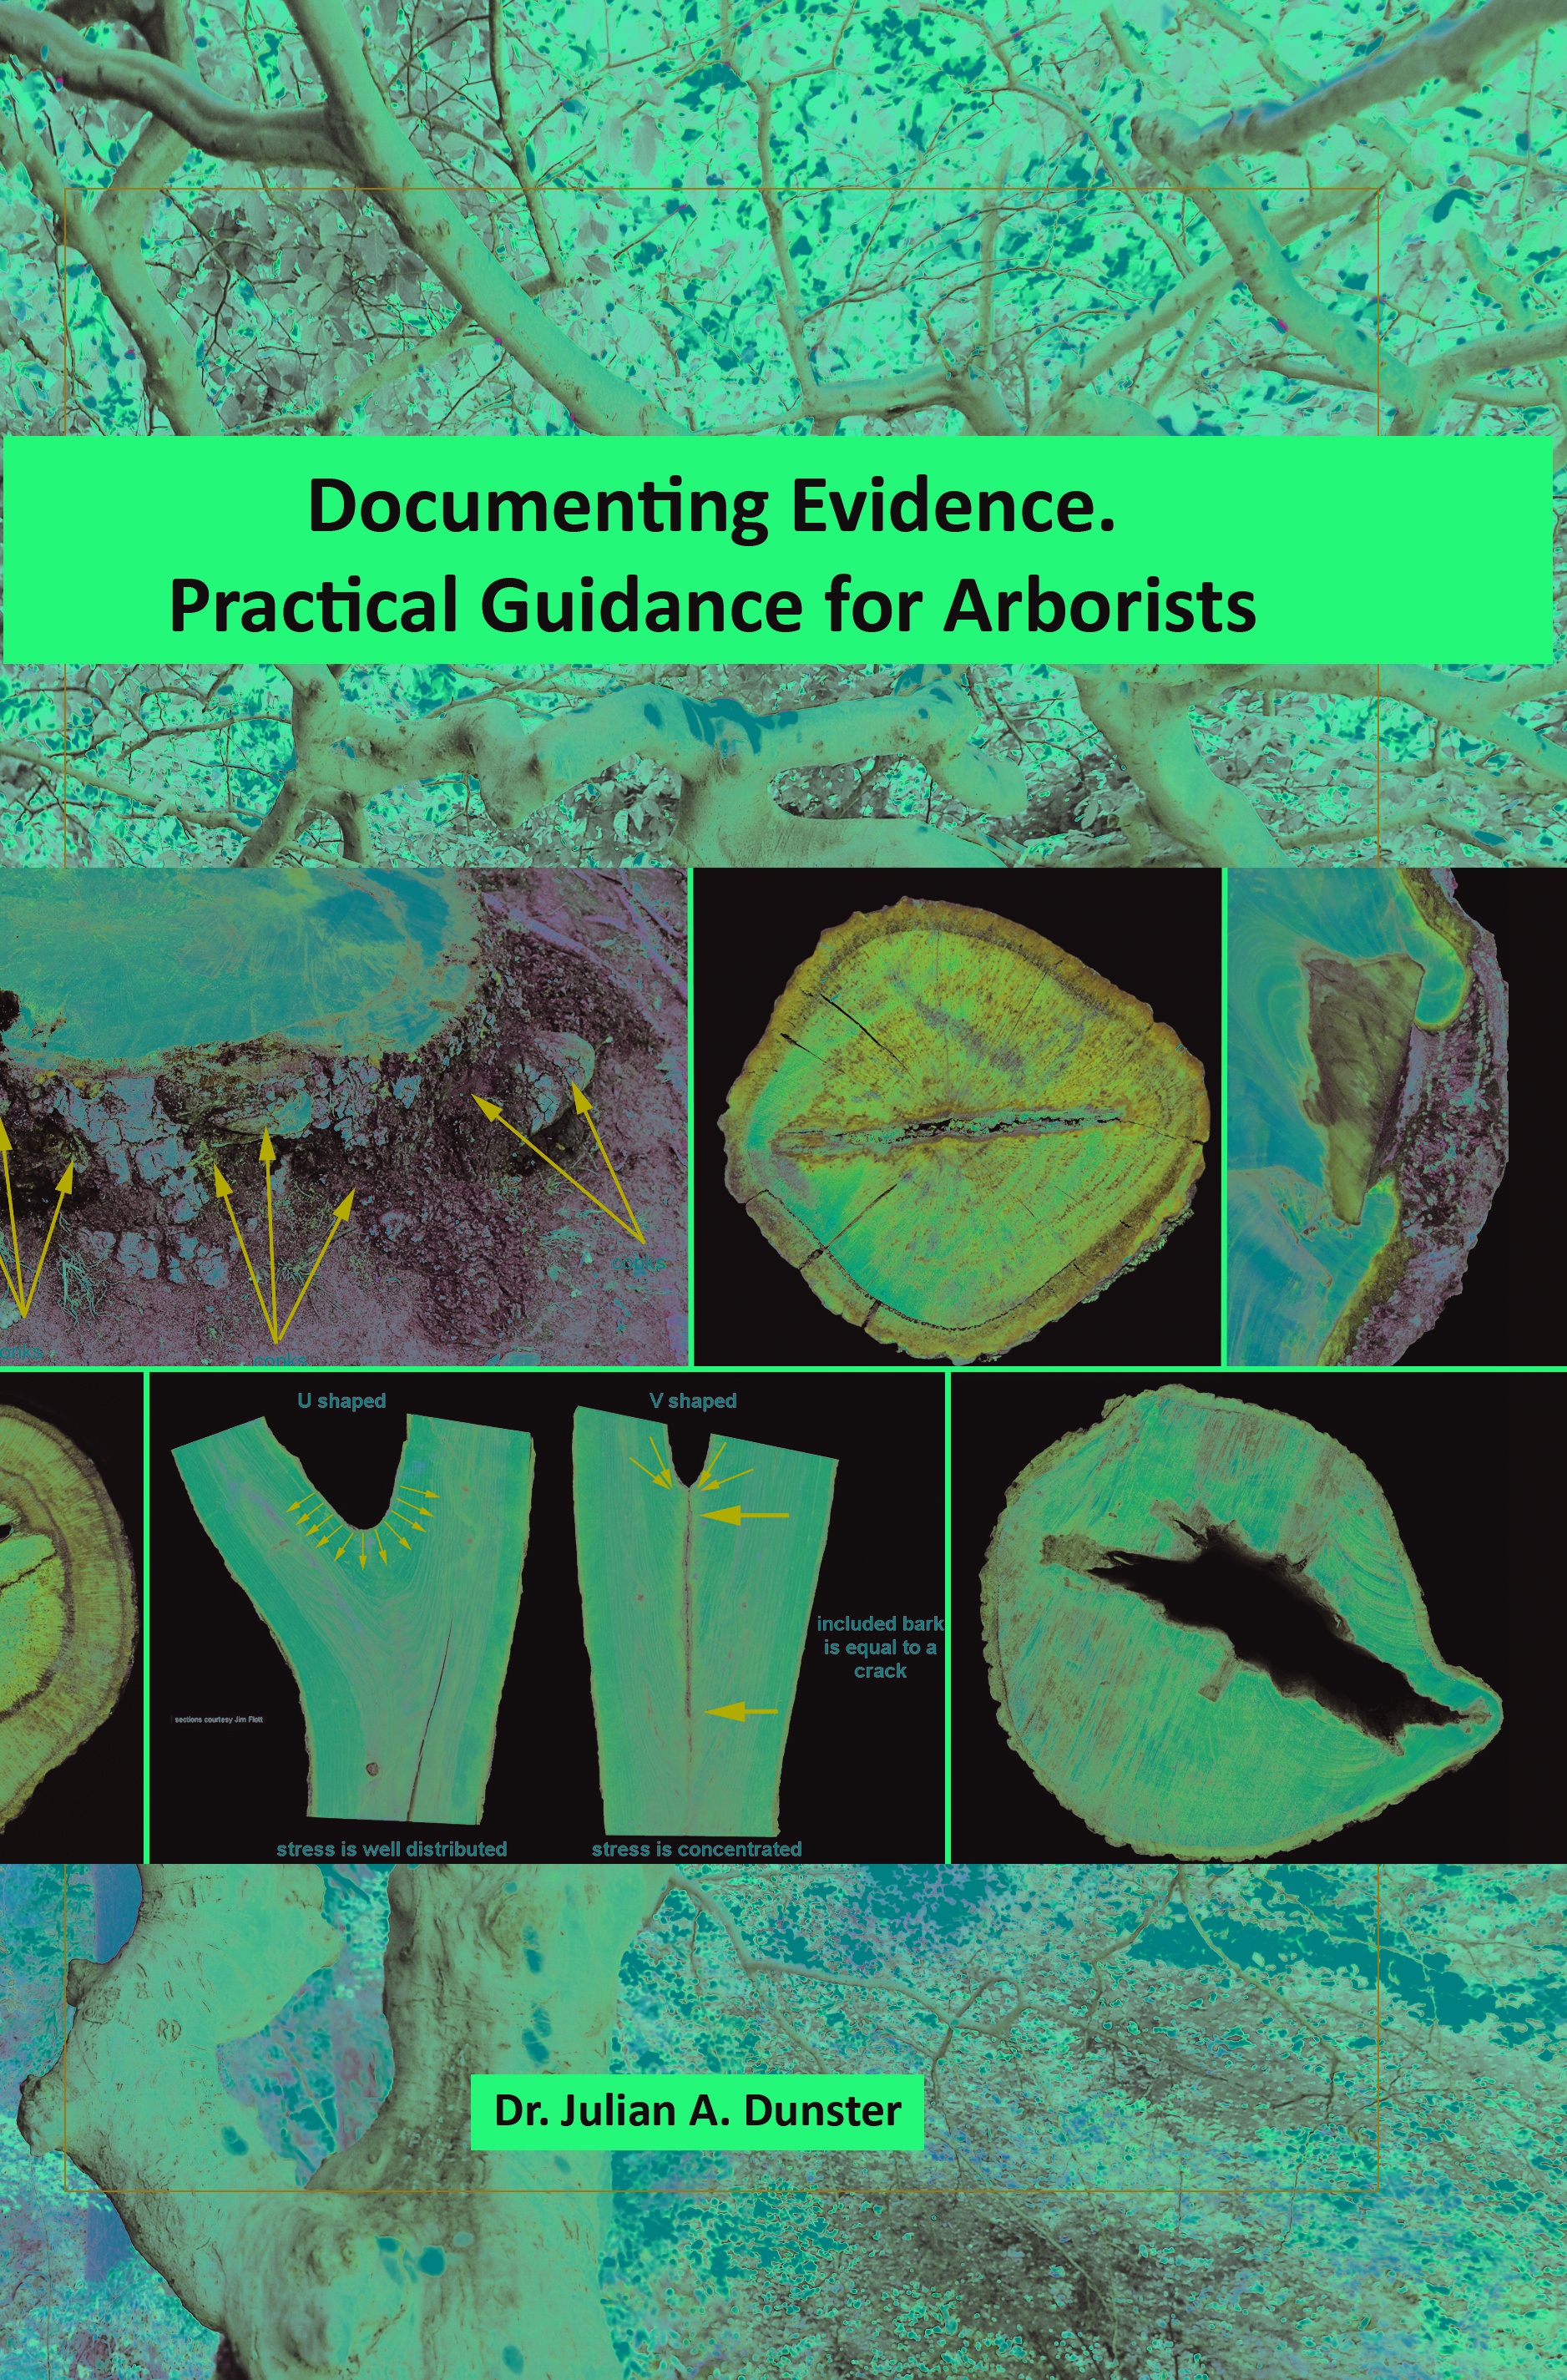 Documenting Evidence – Practical Guidance for Arborists.